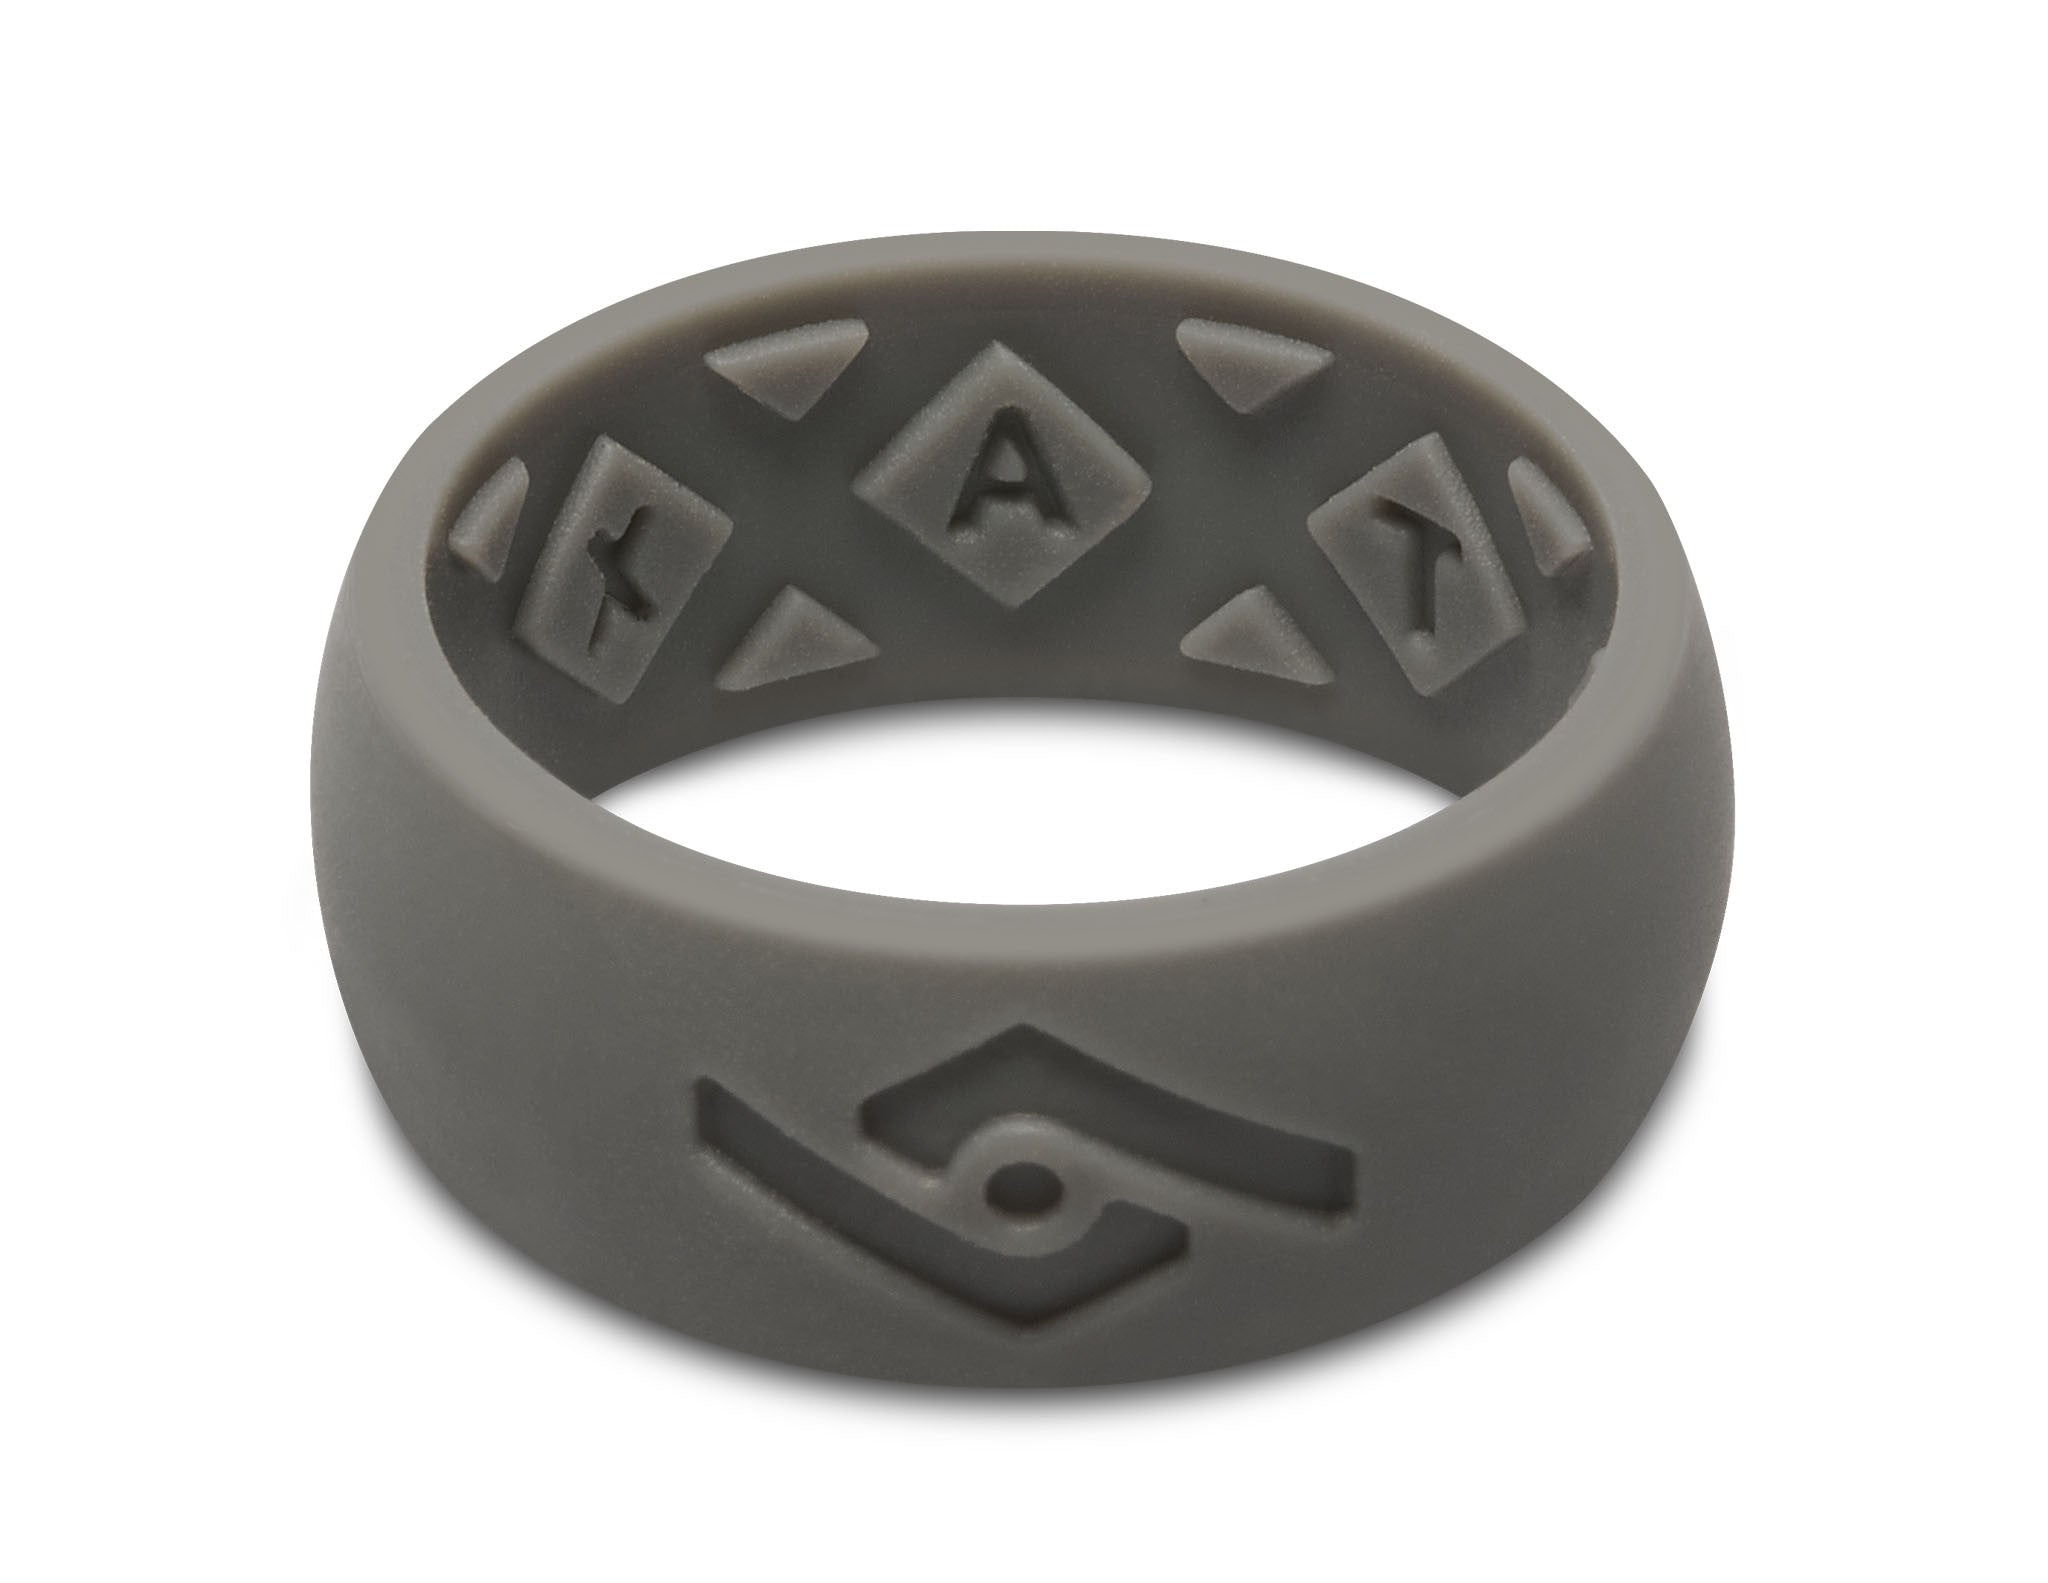 yoda steel ring not collections without ip products stainless spinner black mens wars rings or star gemstones do